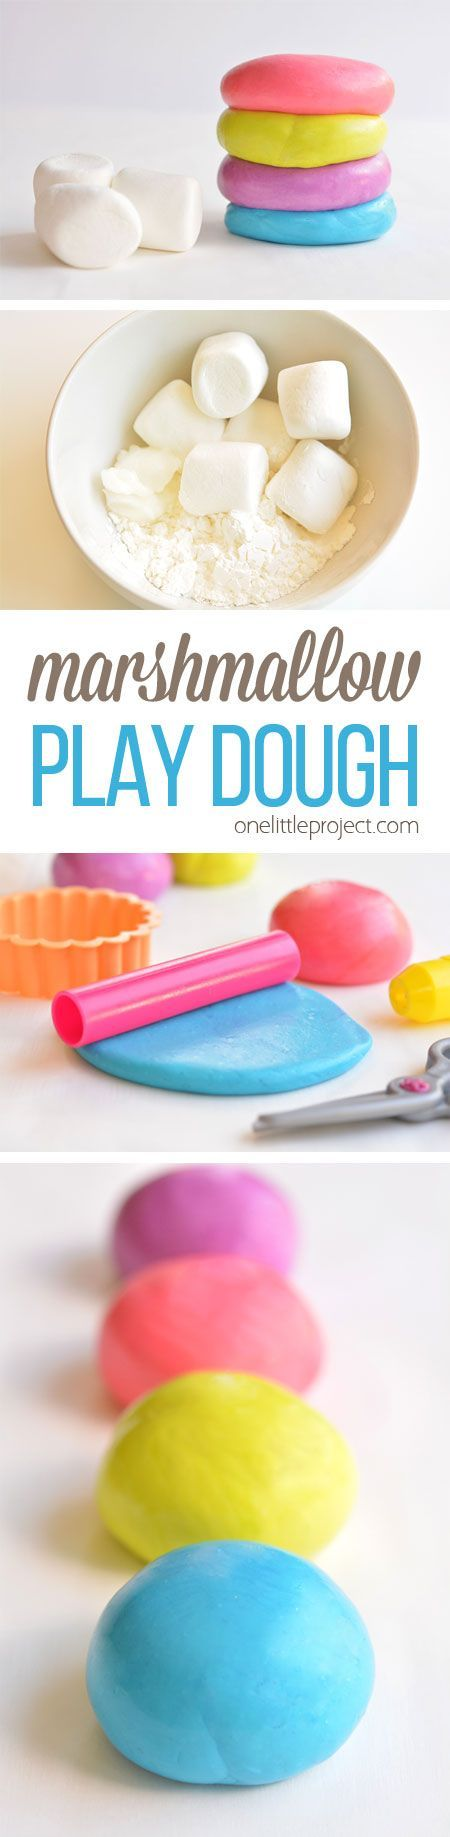 Safe to eat and so much fun to play with! We love marshmallow play dough.